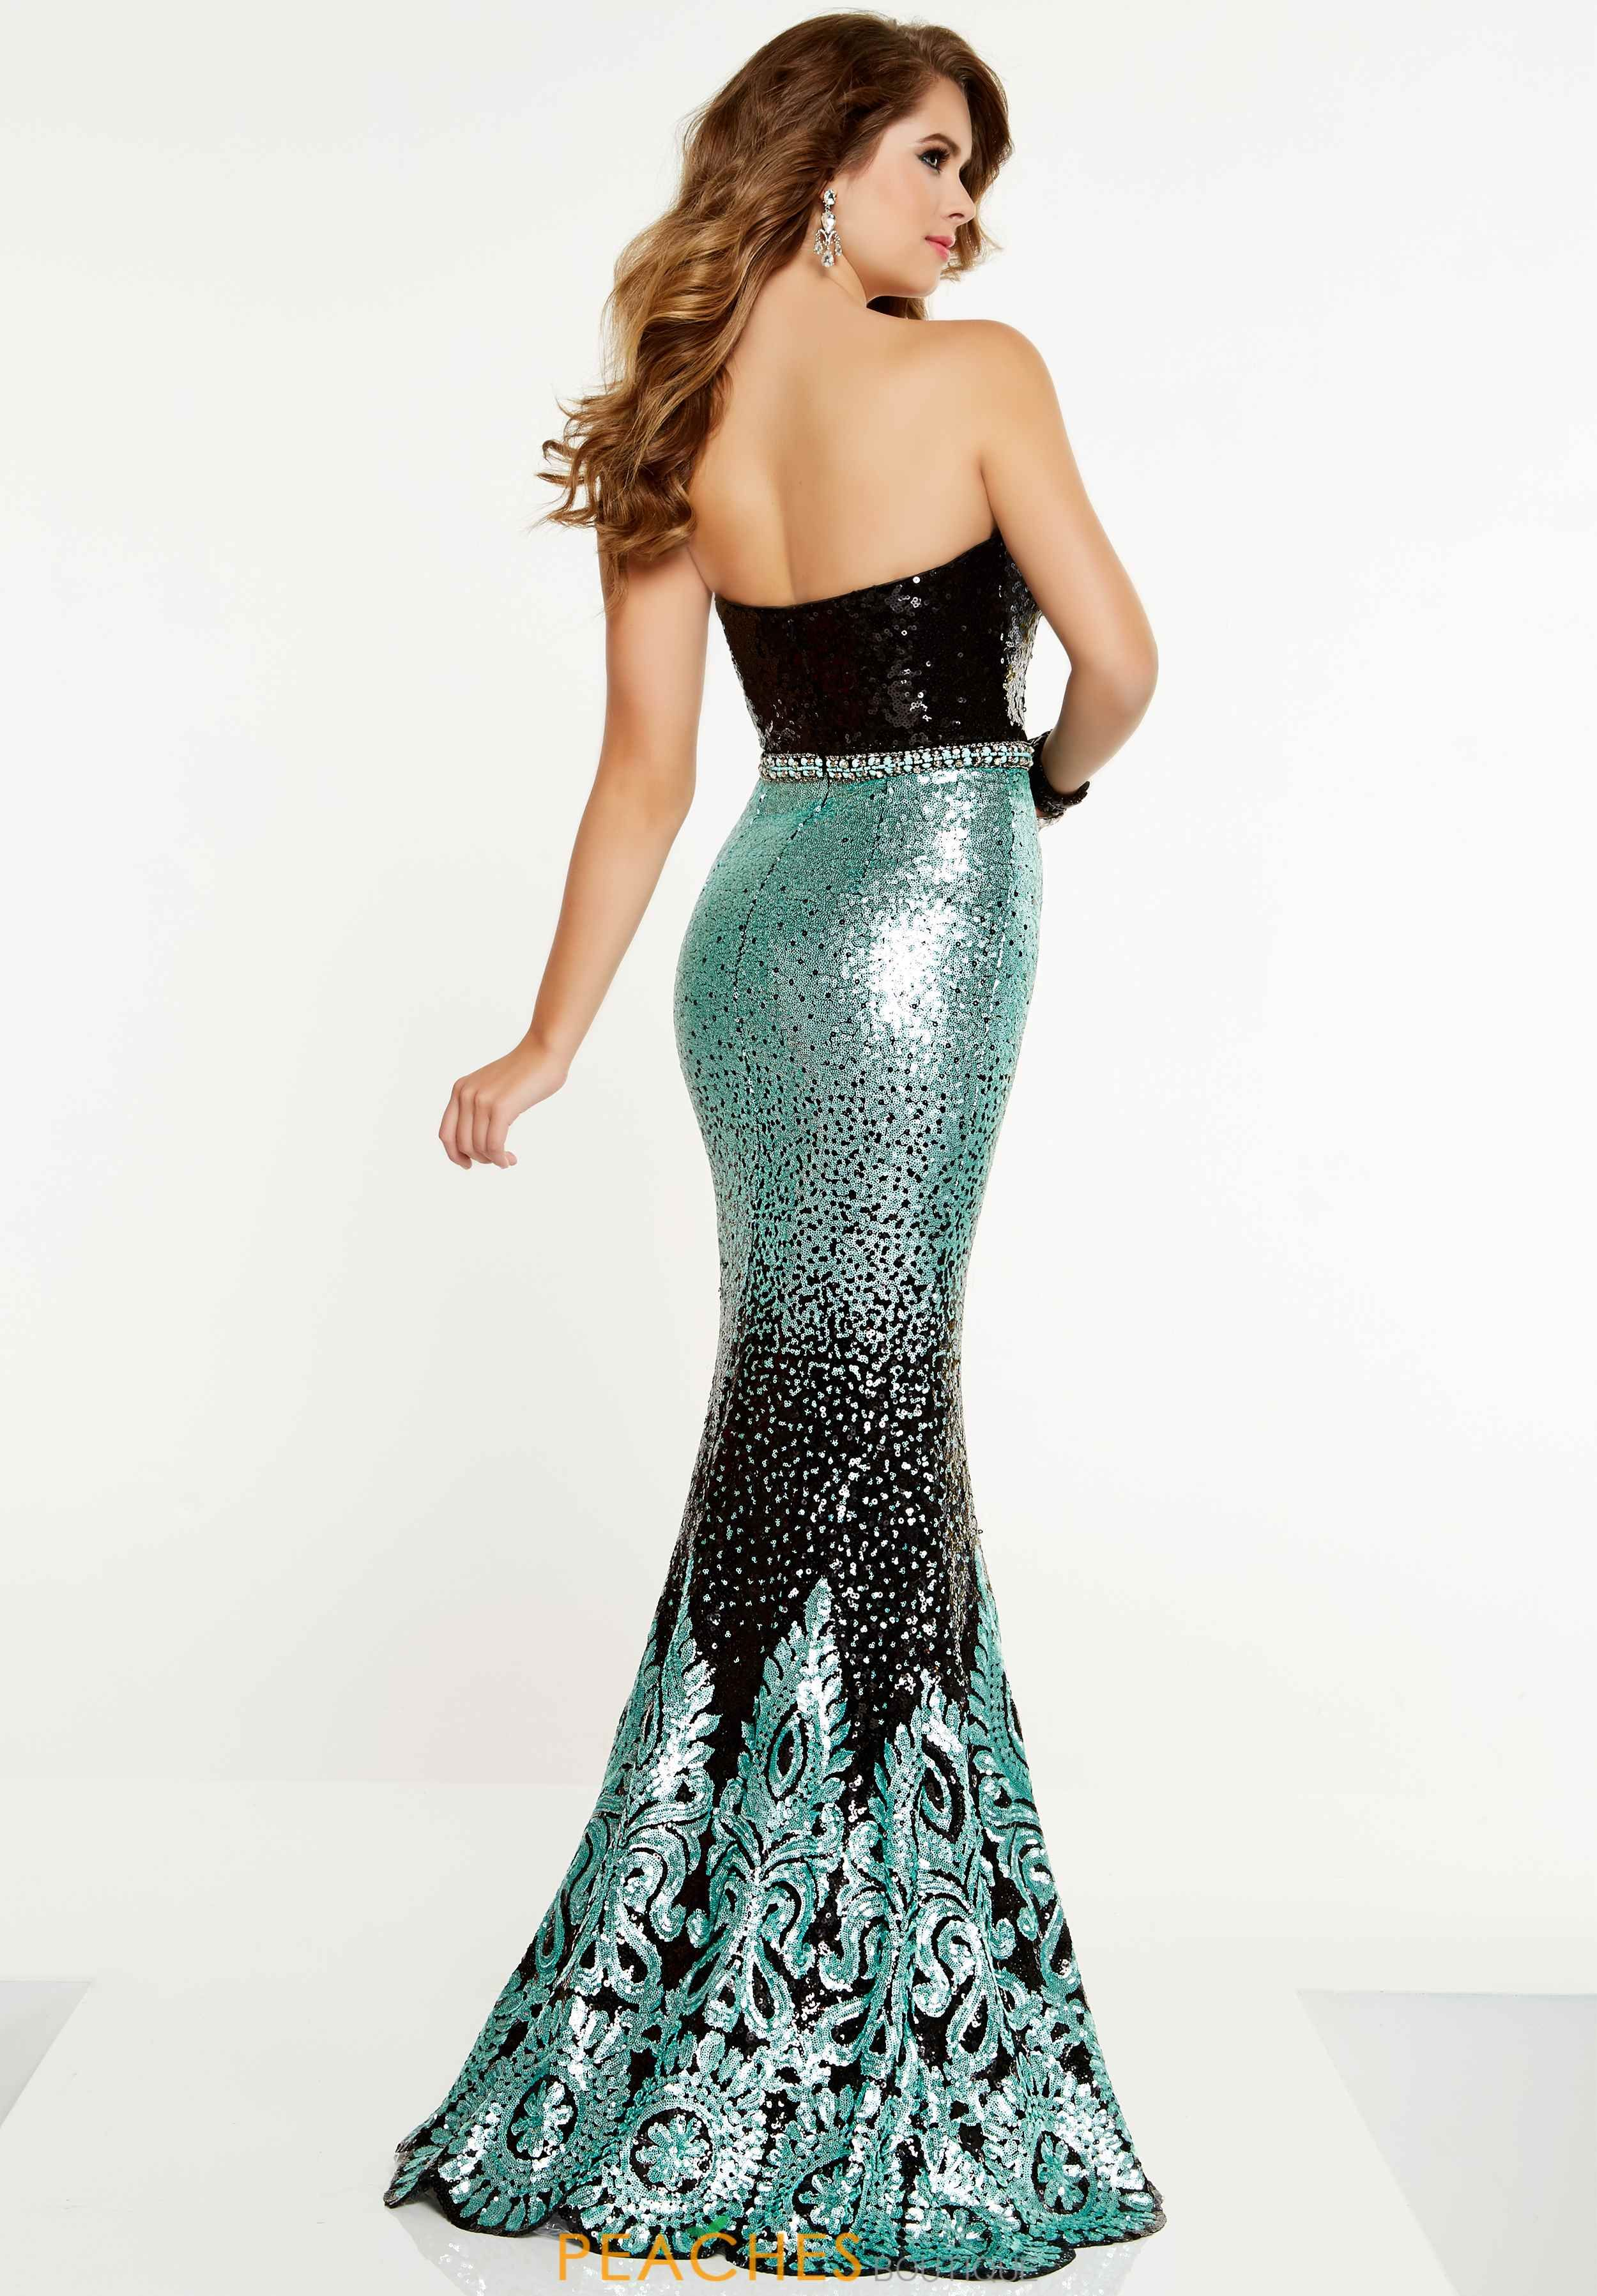 Seafoamblack prom dresses pinterest panoply dresses prom and